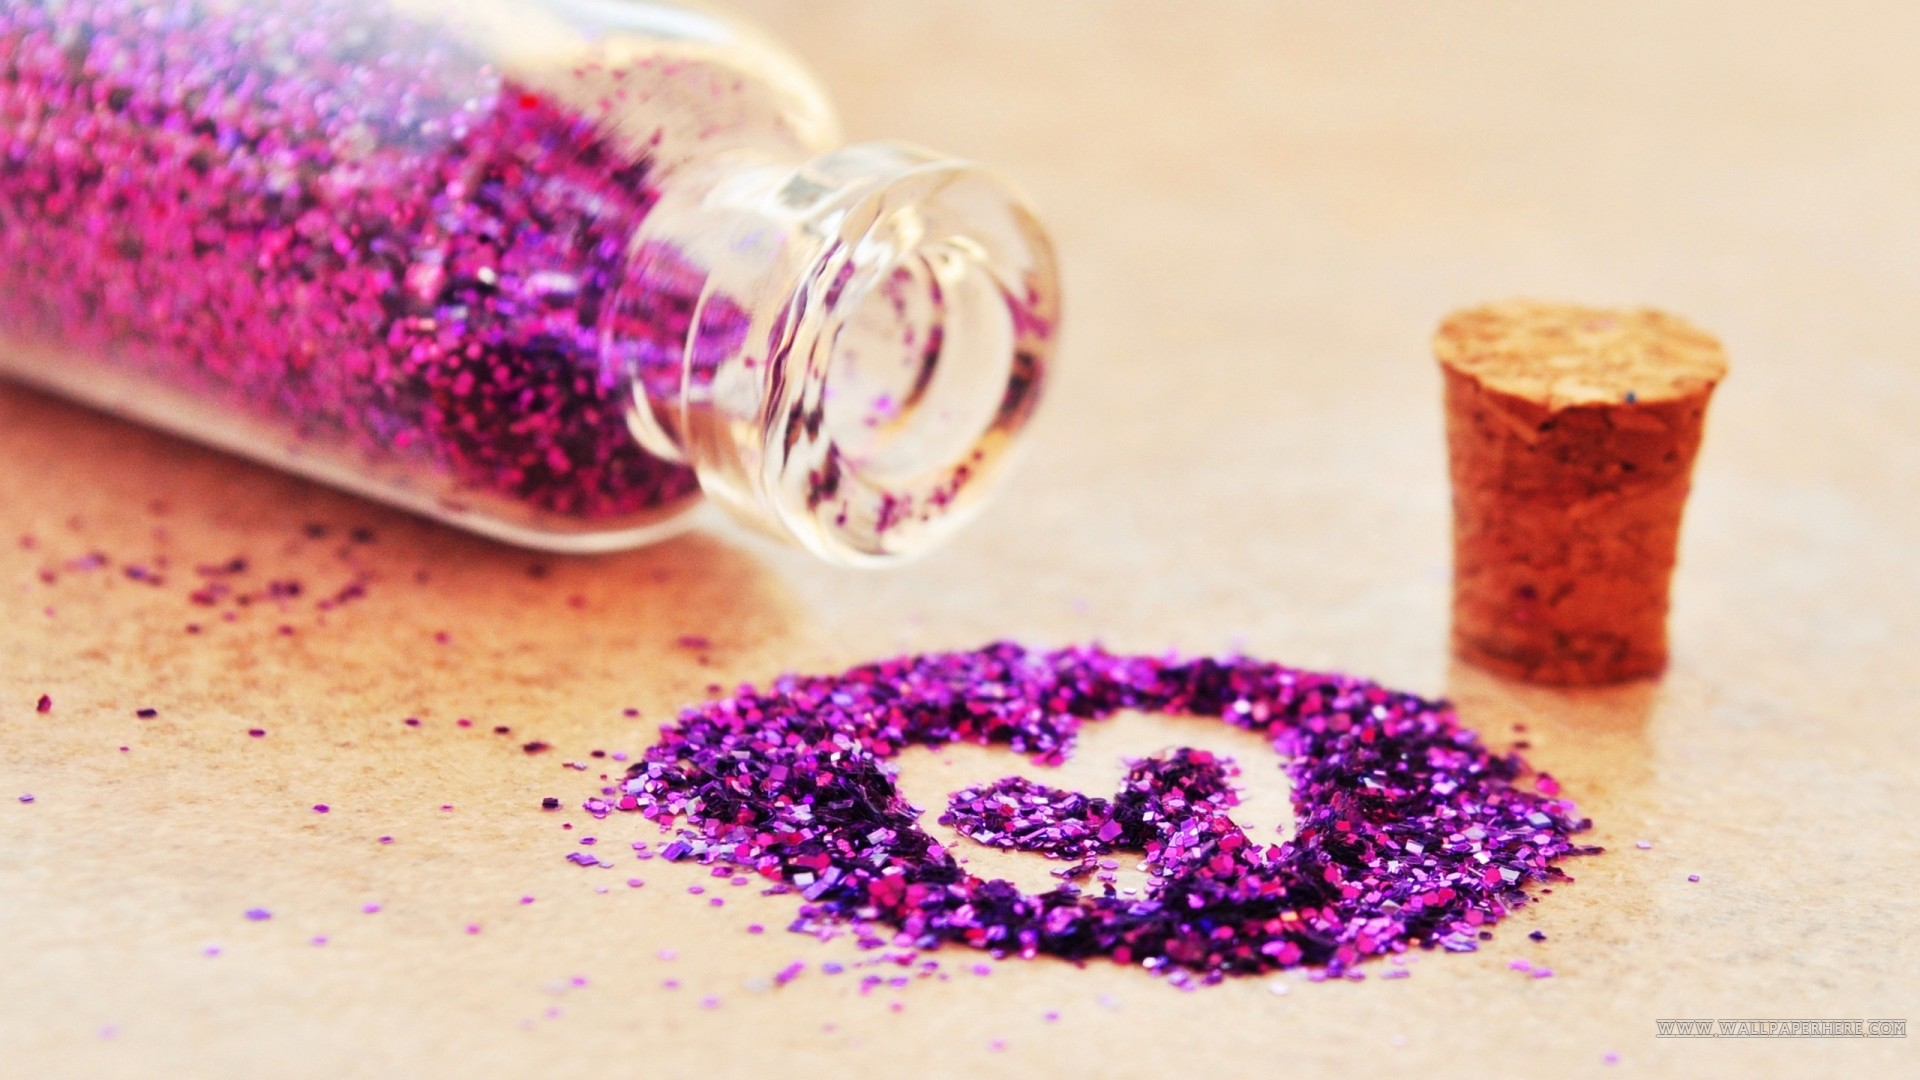 High Resolution Glitter Cute Love Wallpaper Full Size .